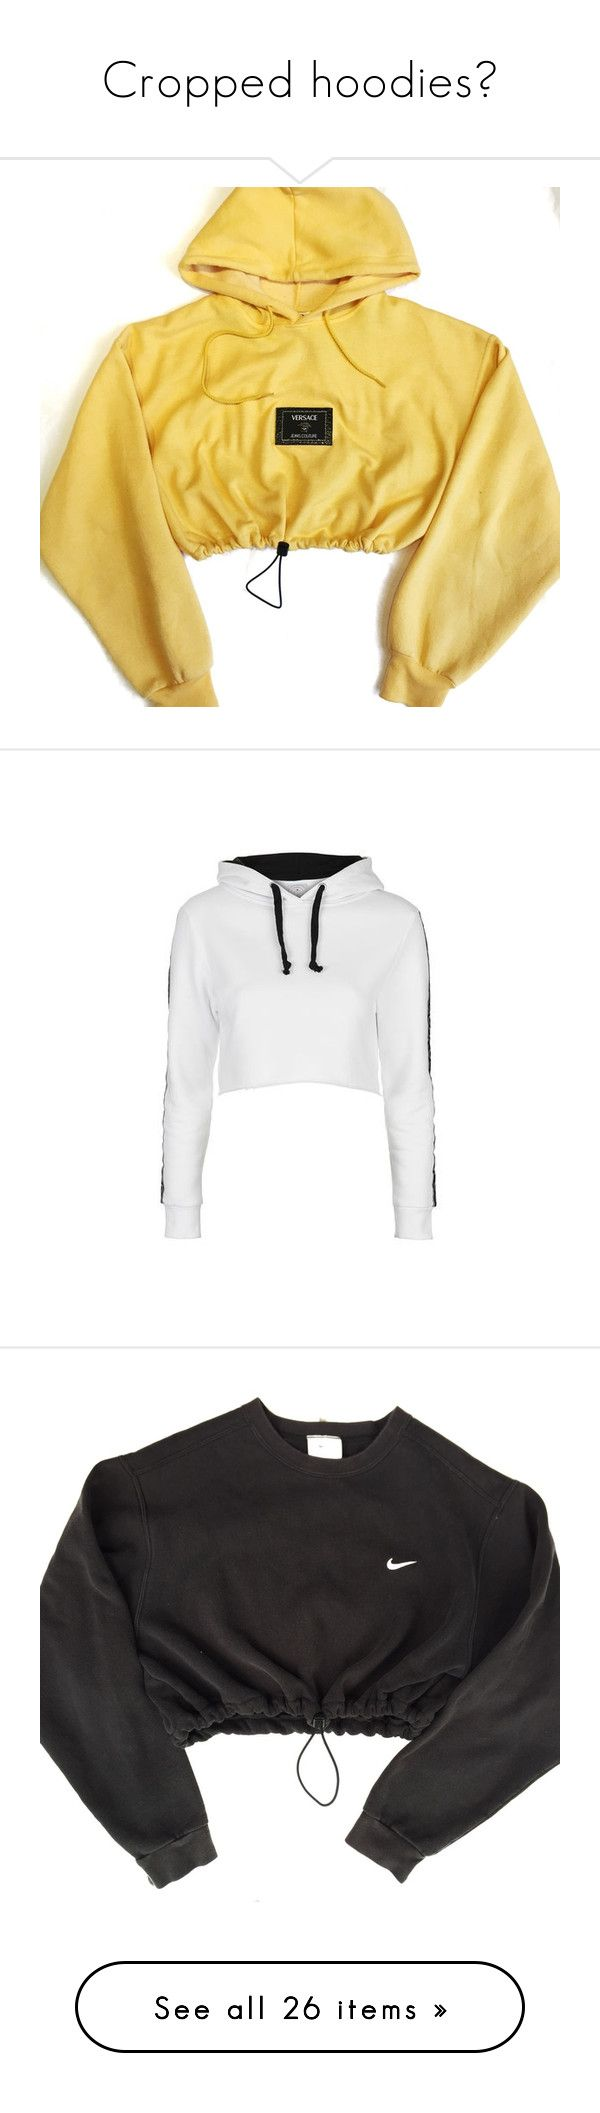 """""""Cropped hoodies💕"""" by kyrahmck ❤ liked on Polyvore featuring tops, hoodies, jackets, shirts, beige shirt, cropped tops, versace hoodie, cropped hooded sweatshirt, crop shirt and sweaters"""